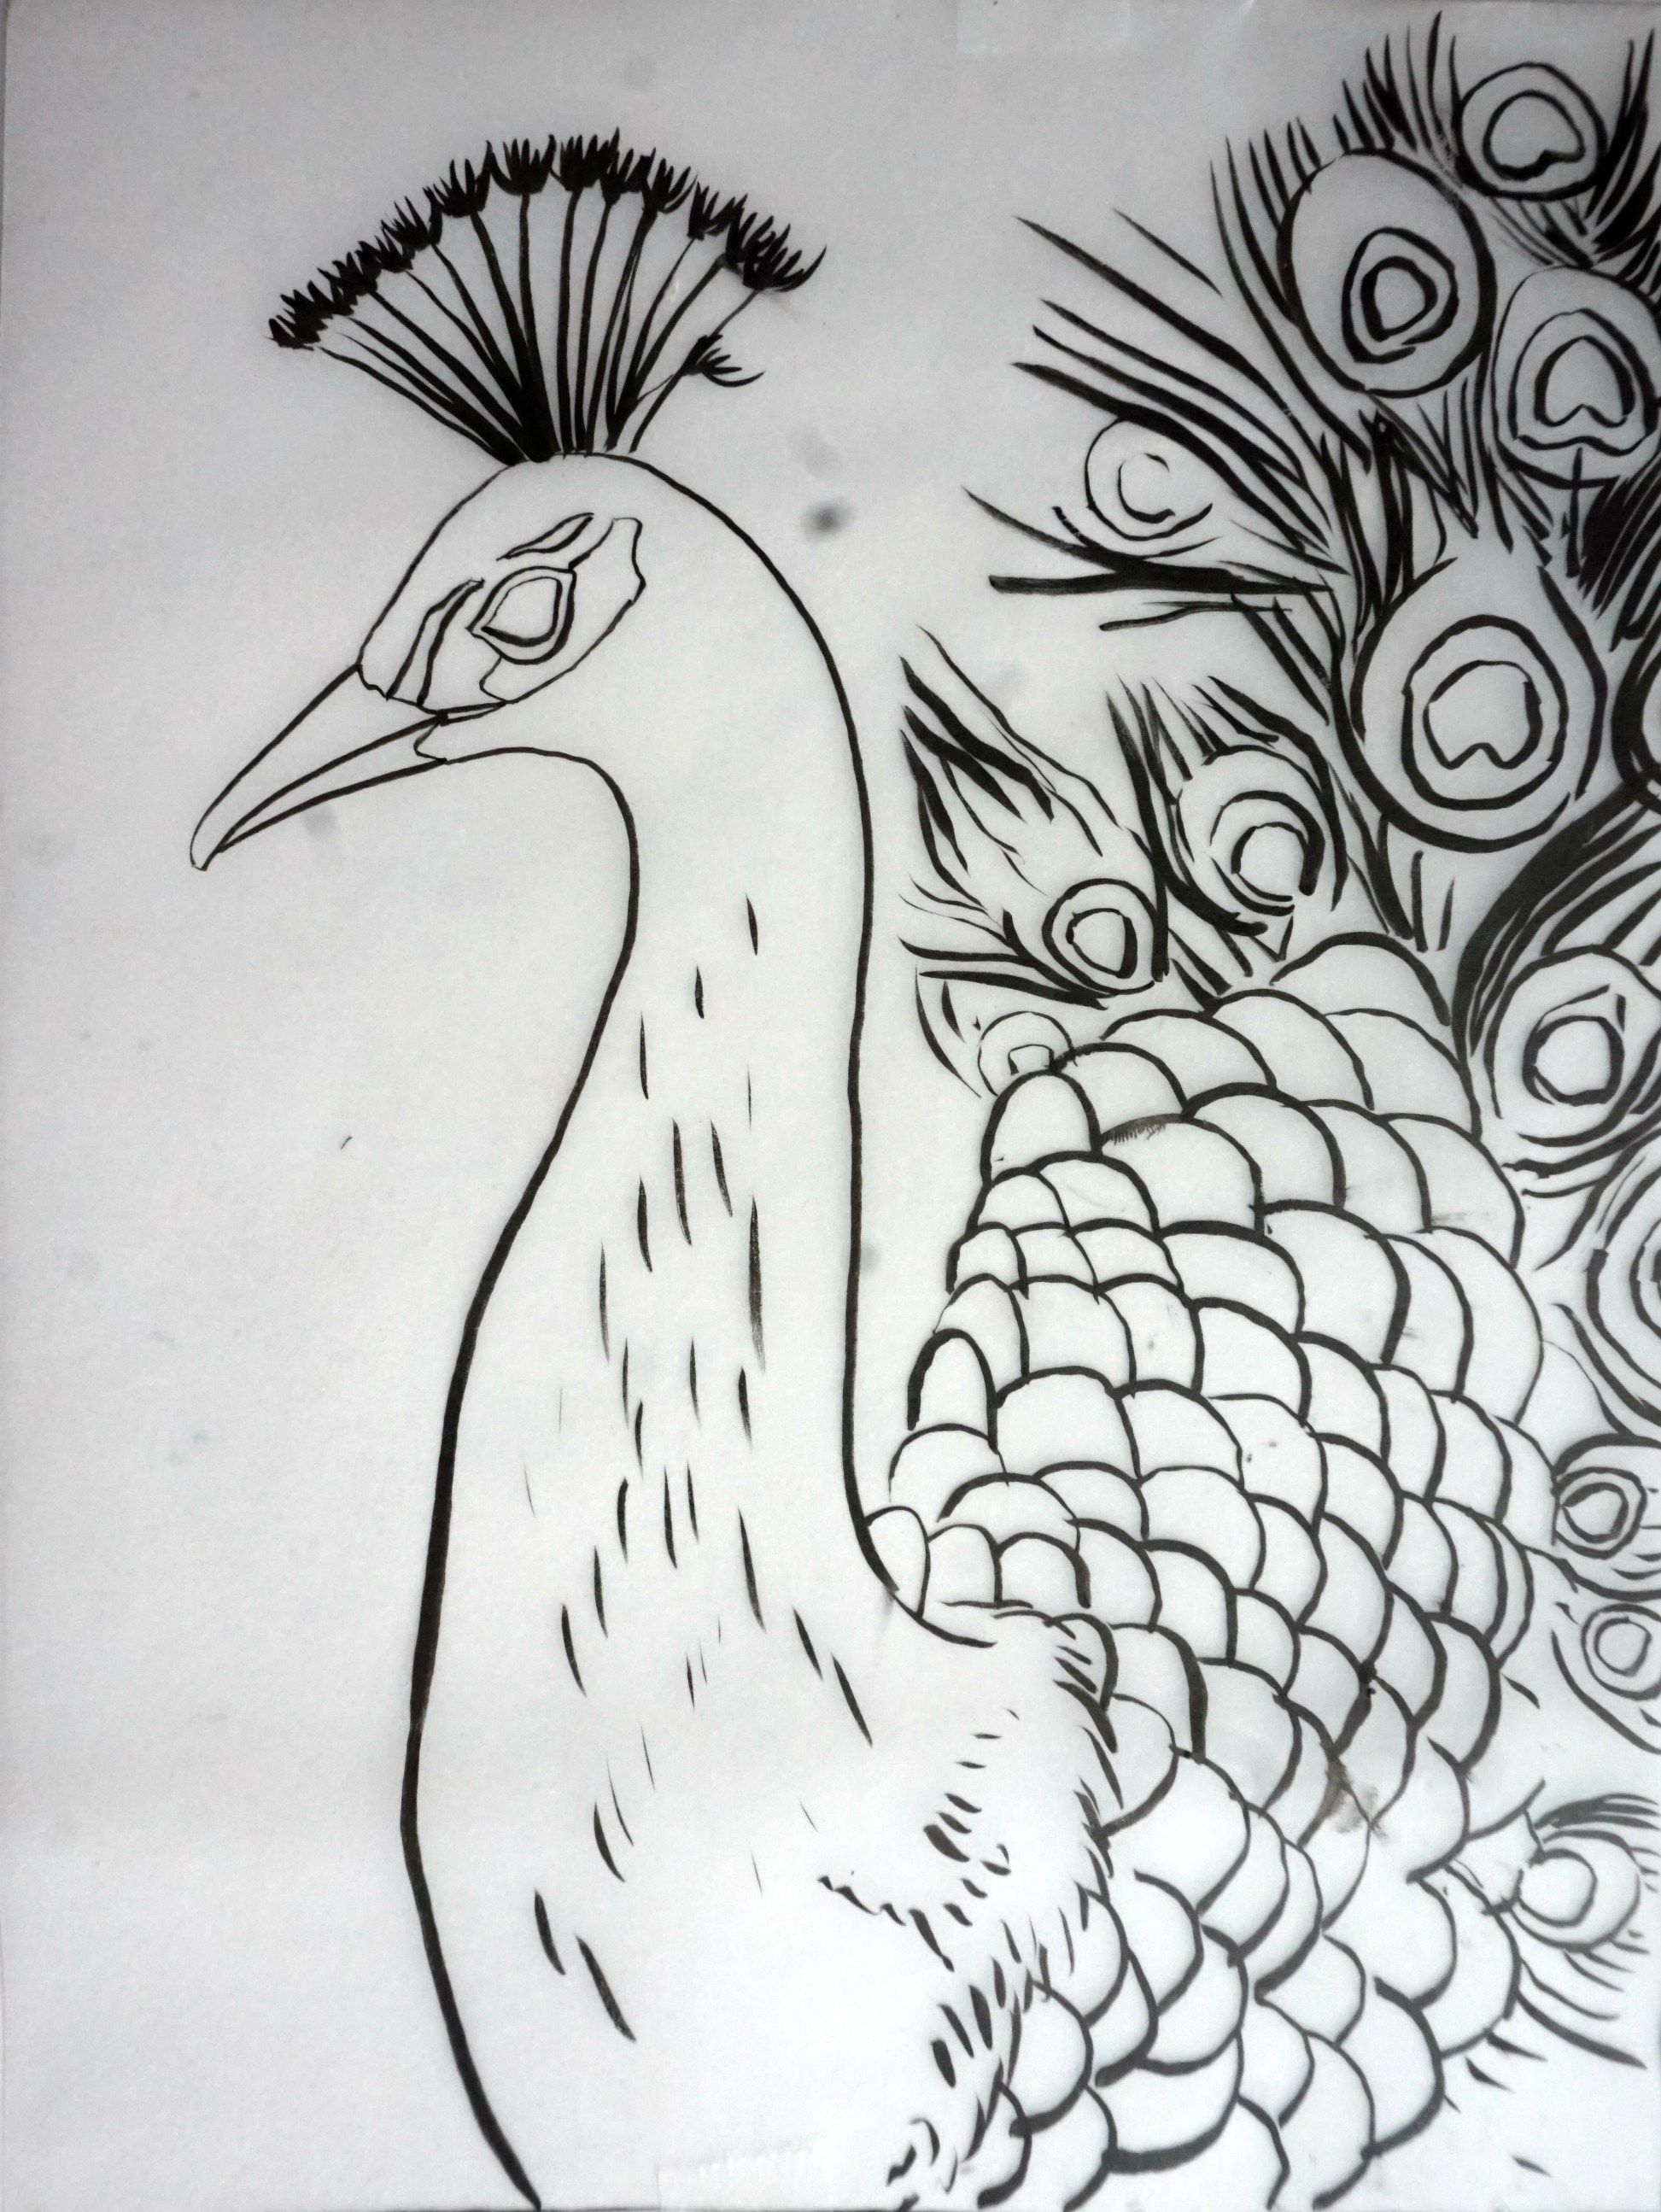 Outline drawing of the peacock